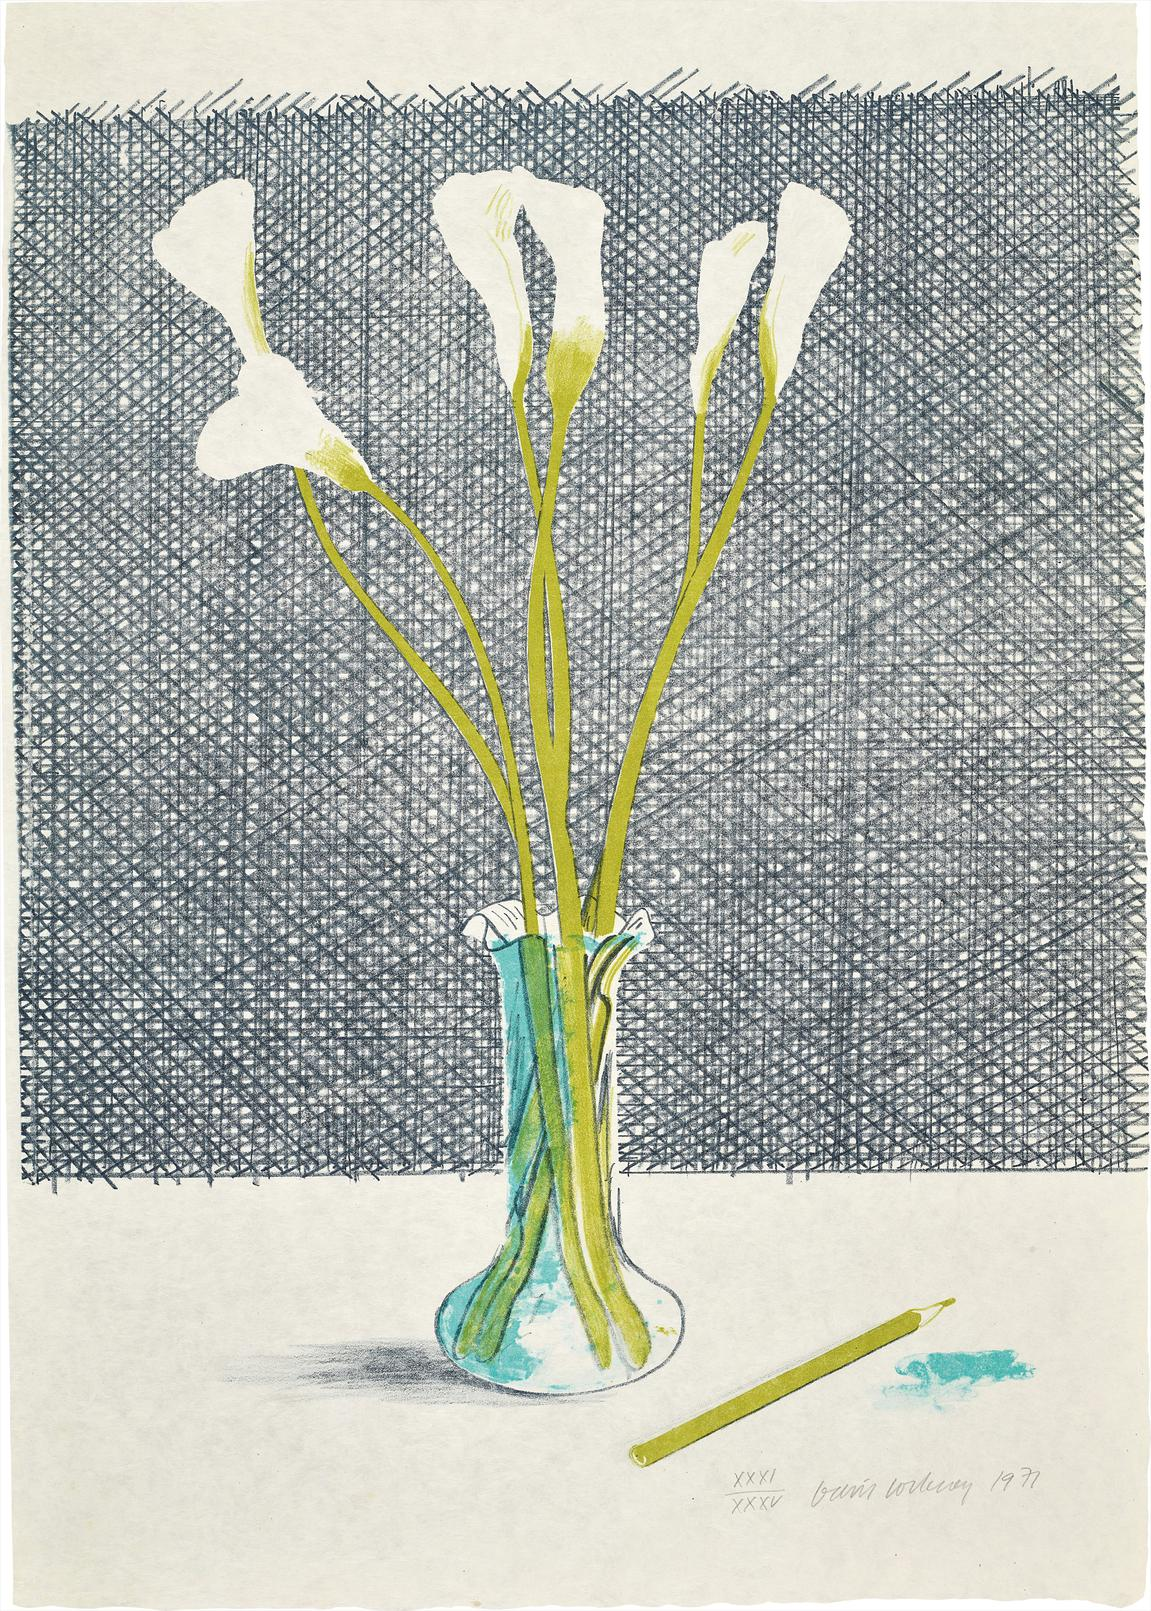 David Hockney-Lillies, From Europaische Graphik No VII-1971